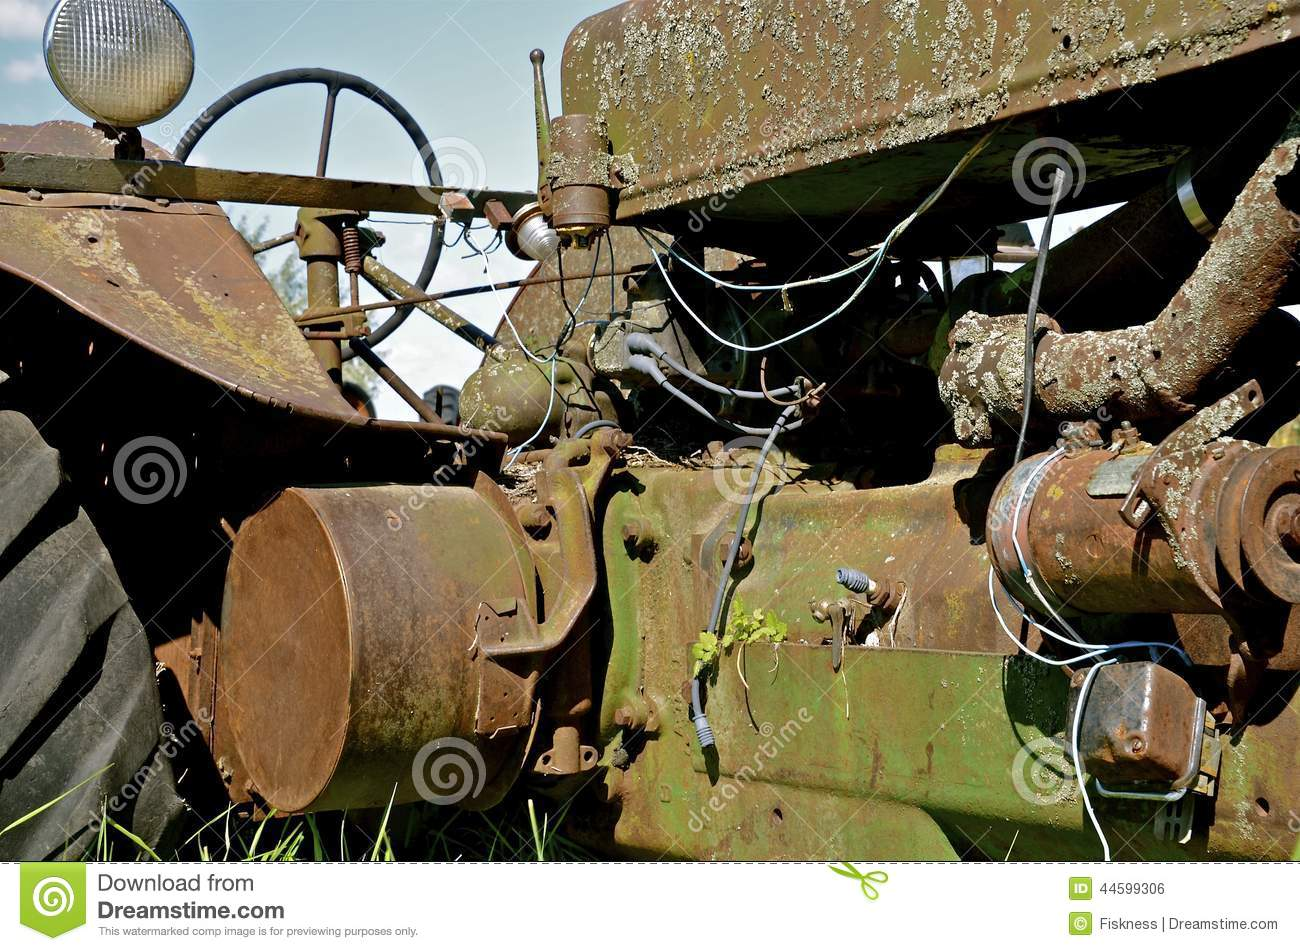 a rusty old tractor has cords and electrical wiring hang in from the hood  cover